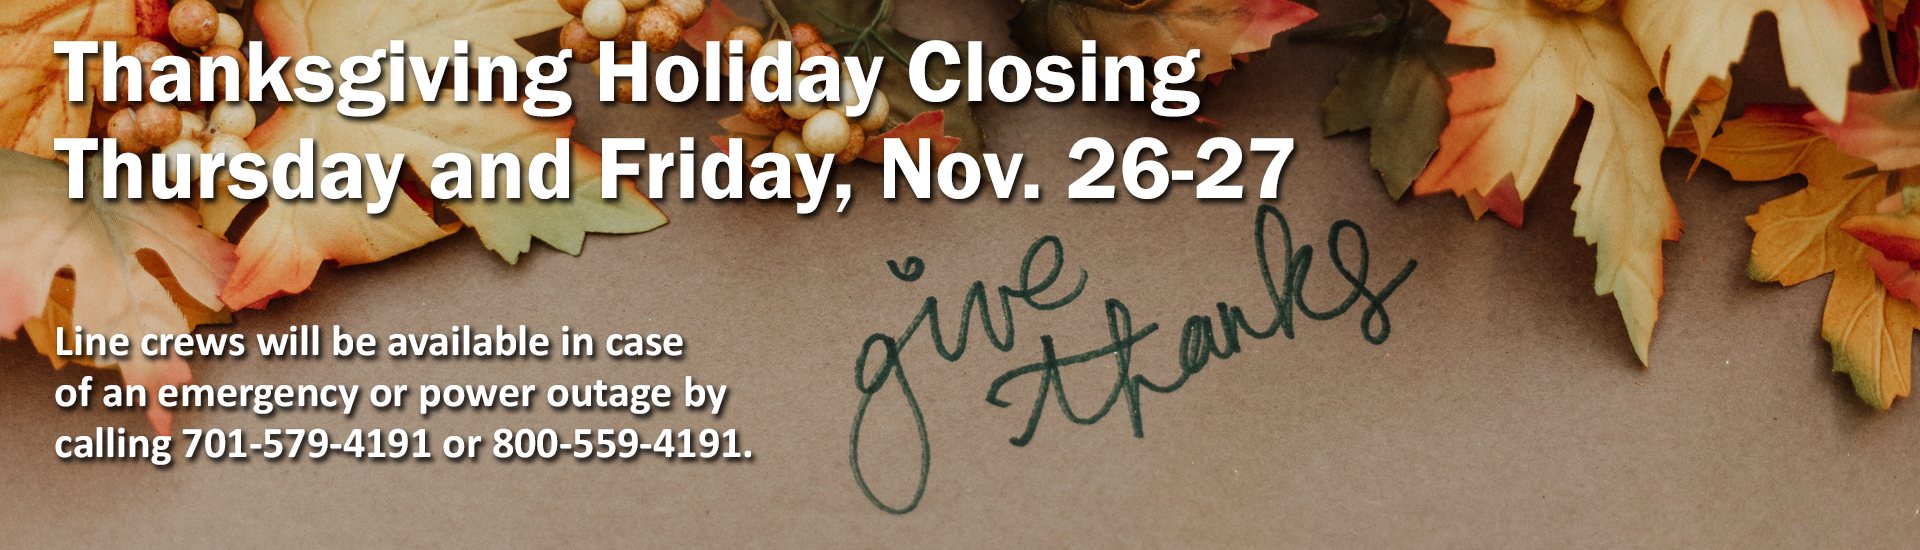 Slope will be closed November 26th and 27th